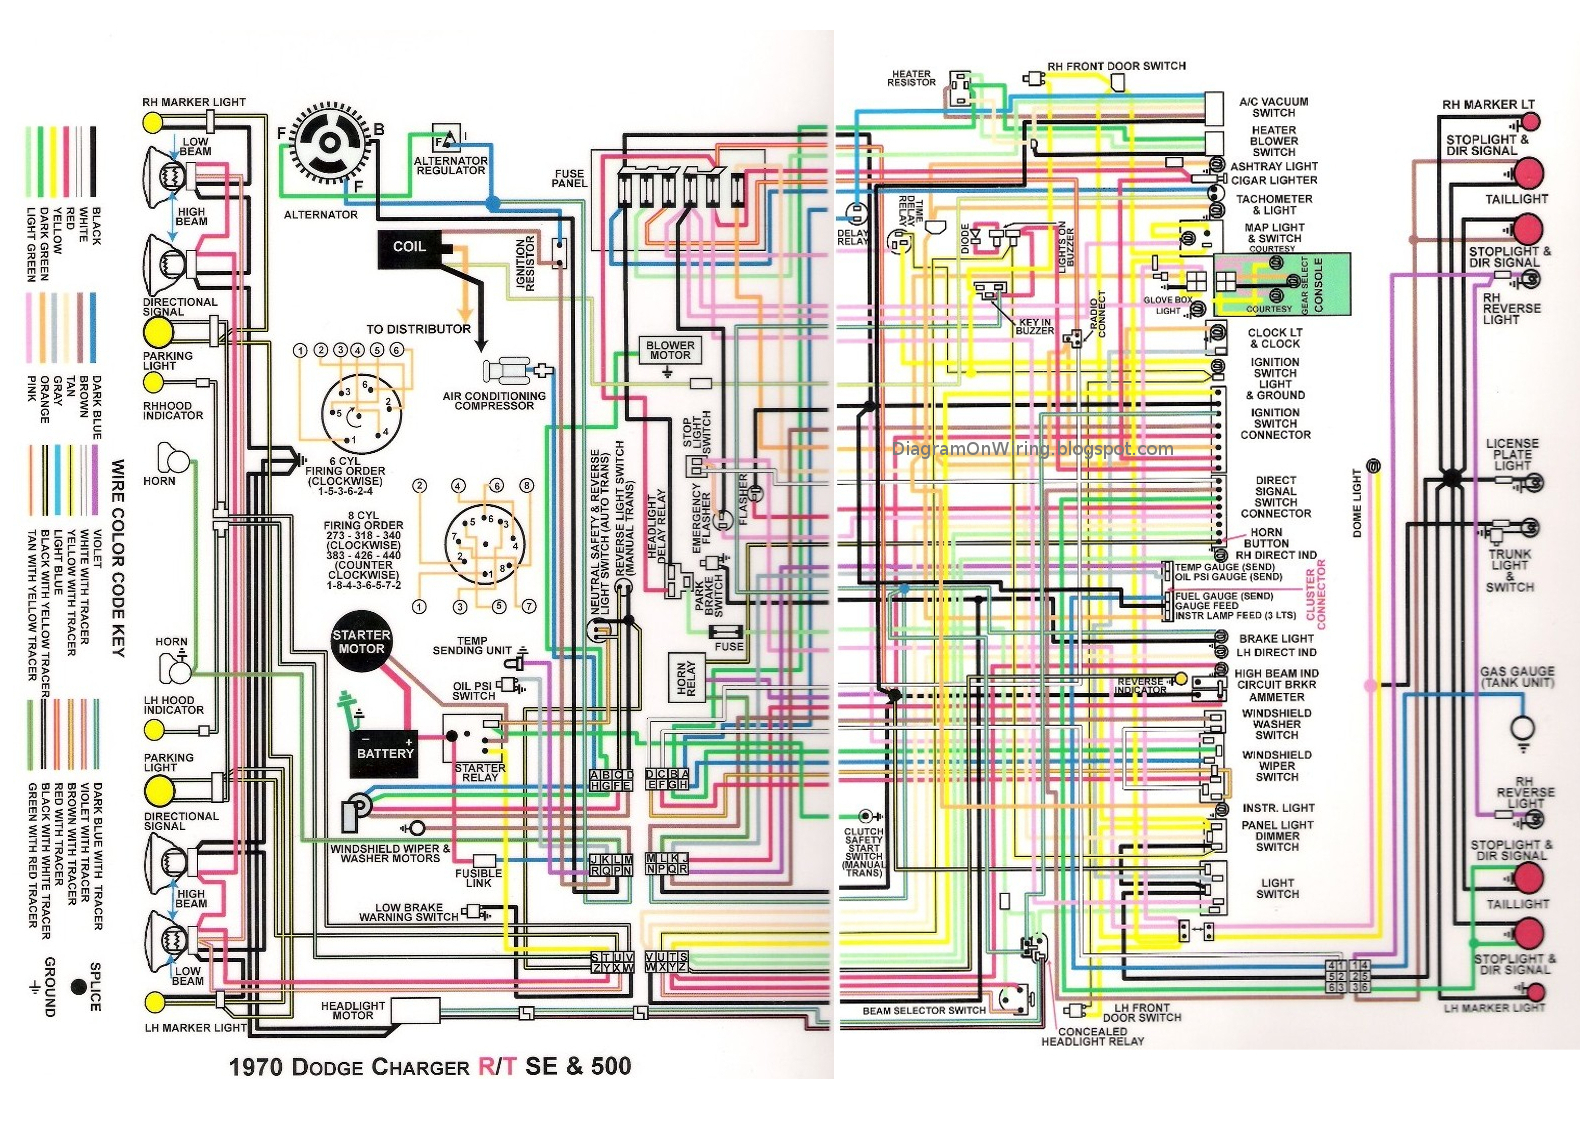 70 vw wiring diagram vw bus wiring diagrams baywindow fusebox layout Denso Alternator Wiring Plug Schematic on denso o2 sensor wiring, vw wiring schematic, denso alternator dimensions, denso 3 wire altenator, denso alternator plug, ignition switch wiring schematic, denso 101211 1420 suzuki wiring-diagram, alternator circuit schematic, denso alternator diagram, denso voltage regulator,